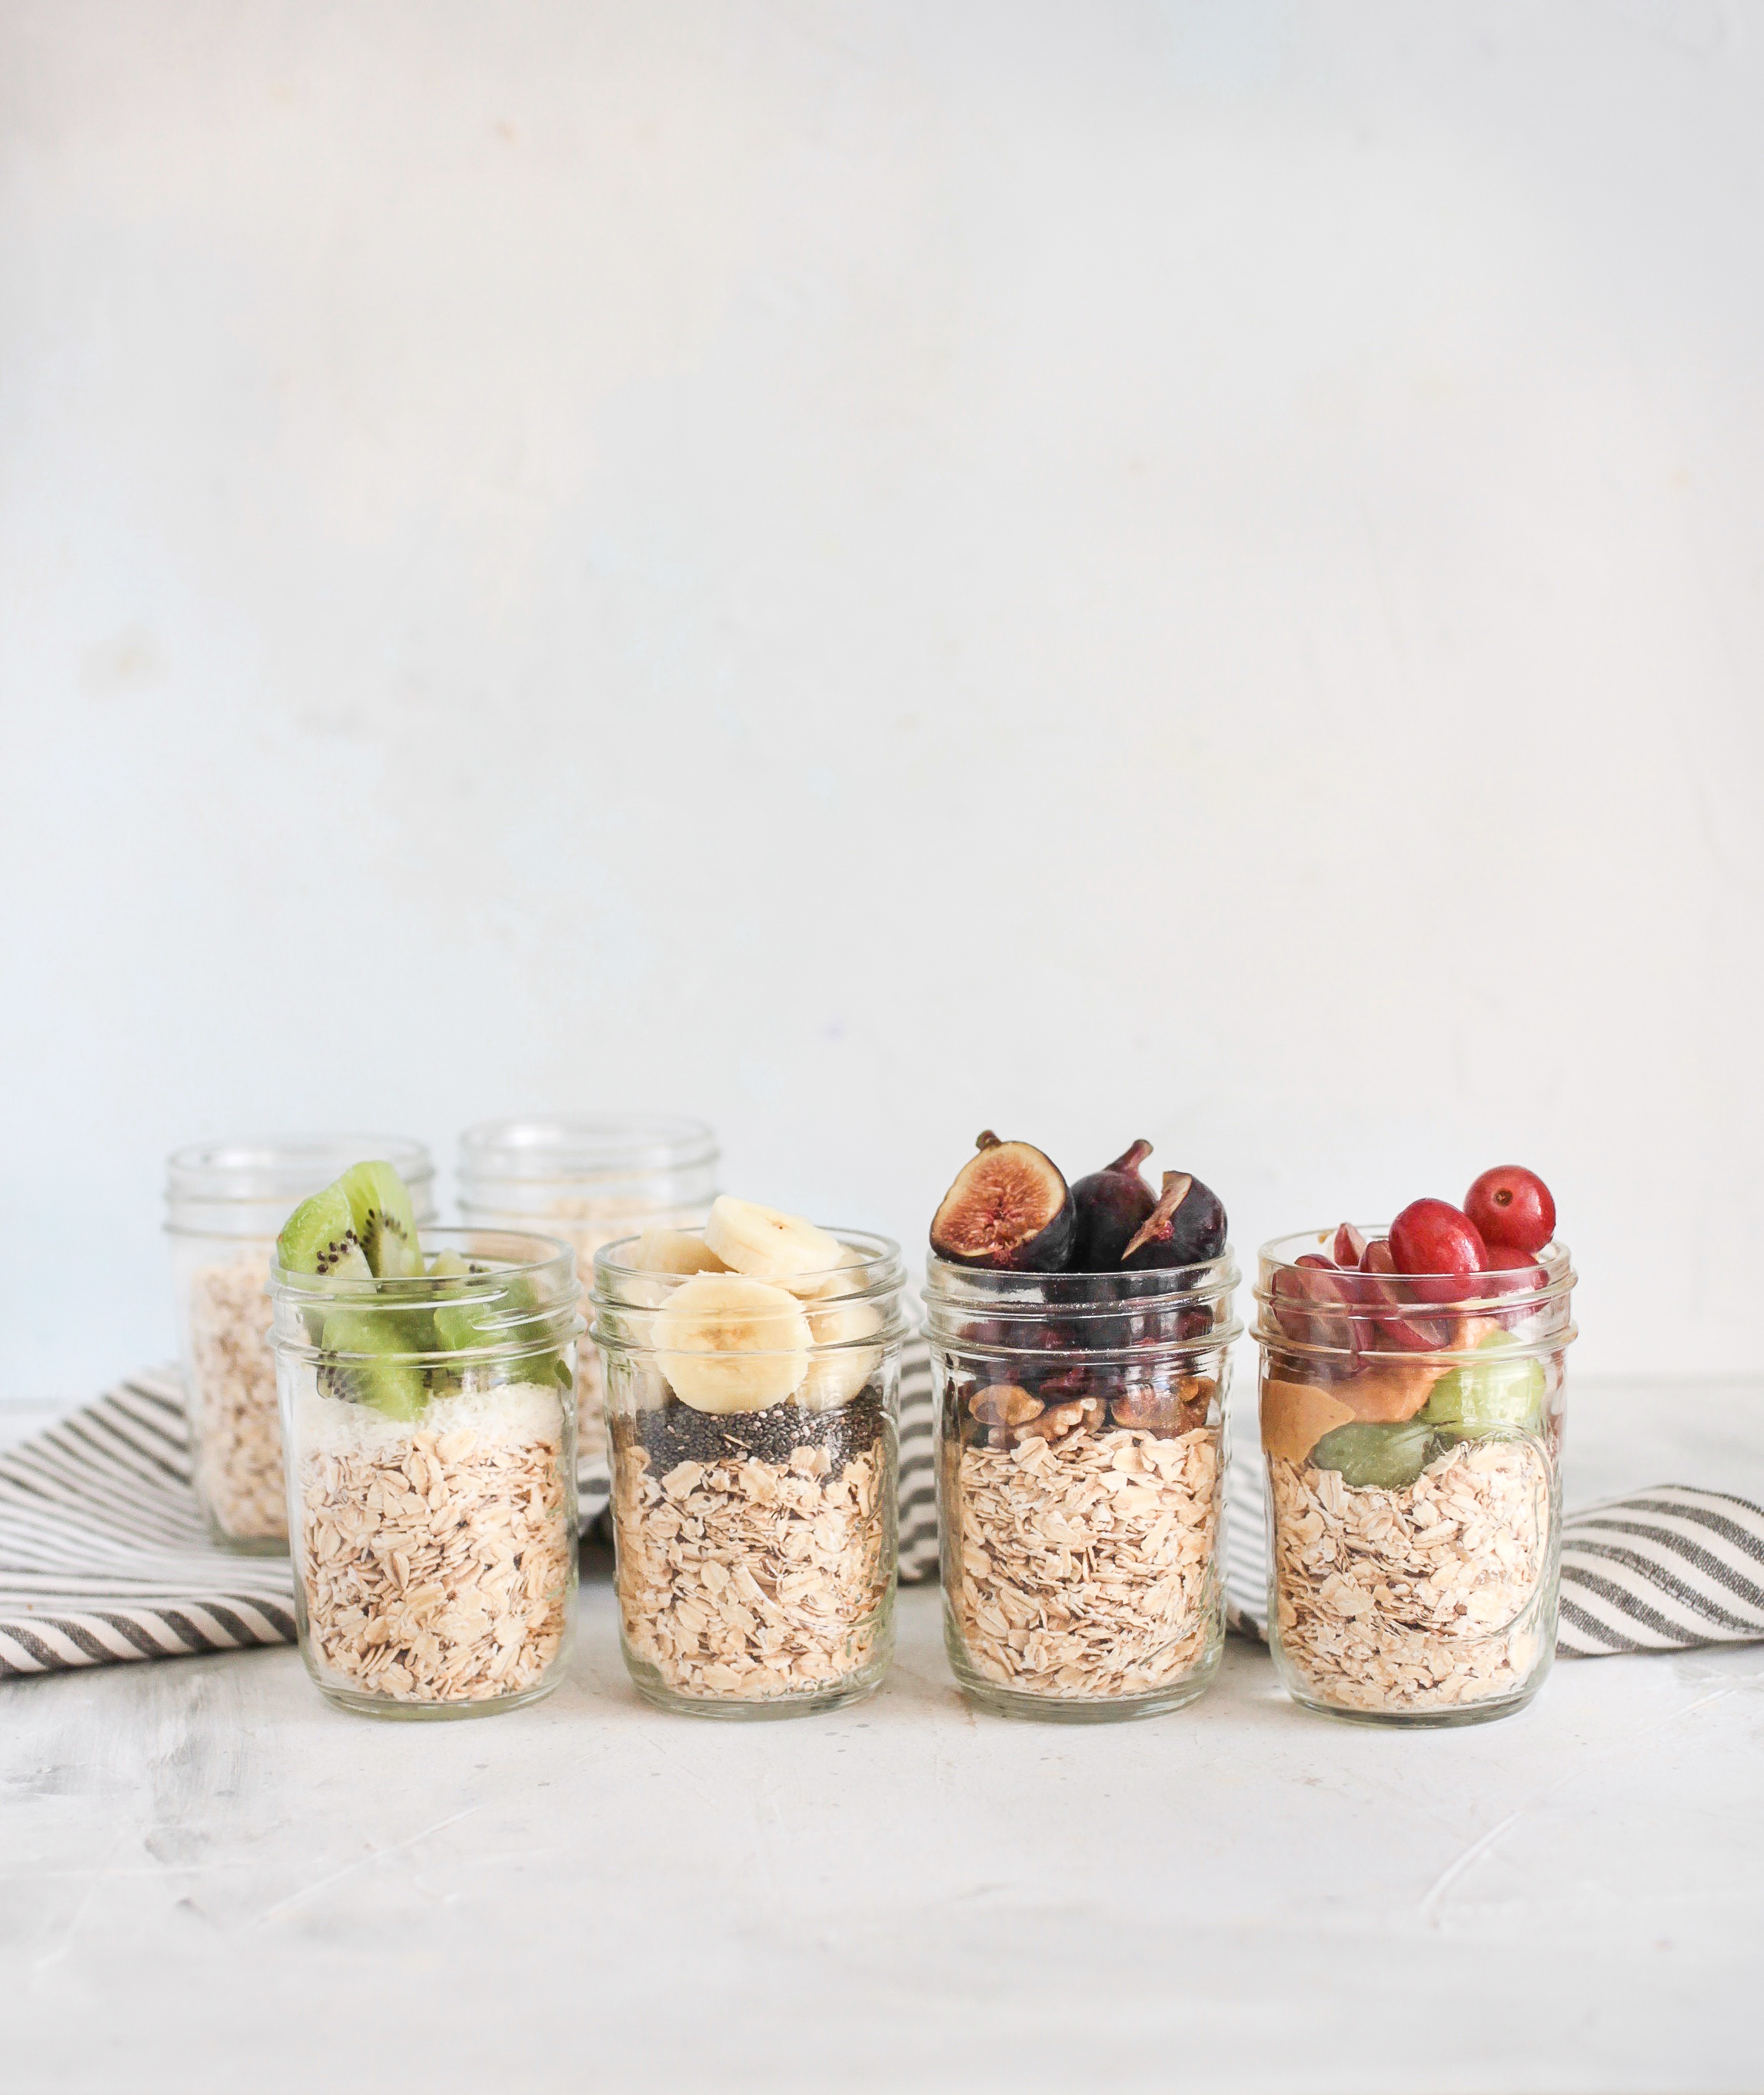 Meal Prep Oat and Fruit Breakfast Jars